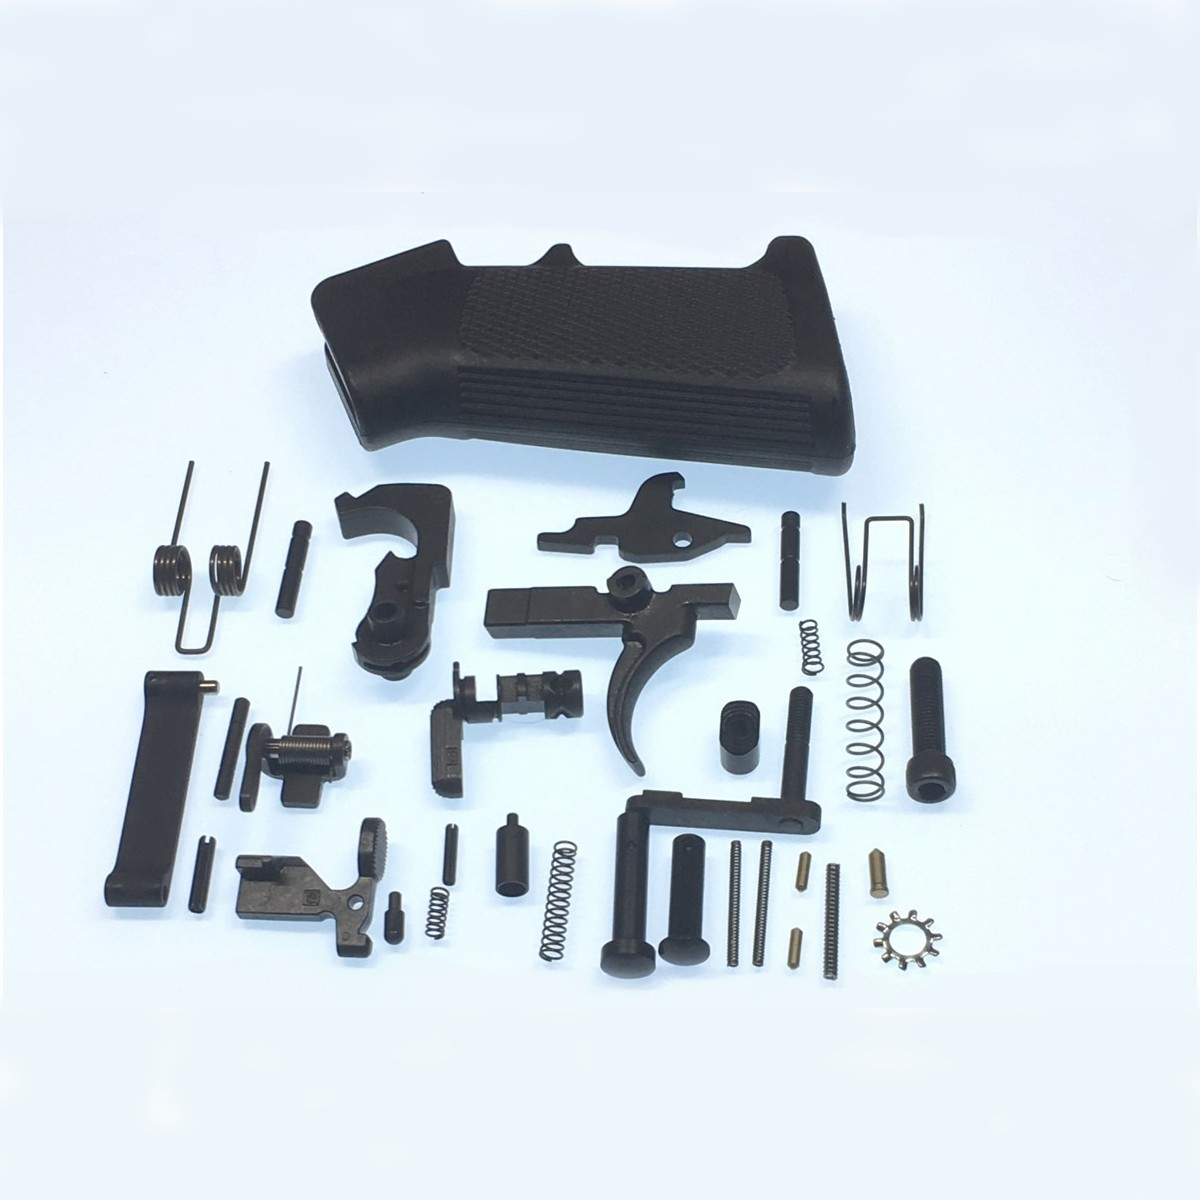 M16 Complete Lower Receiver Replacement Parts Set Kit